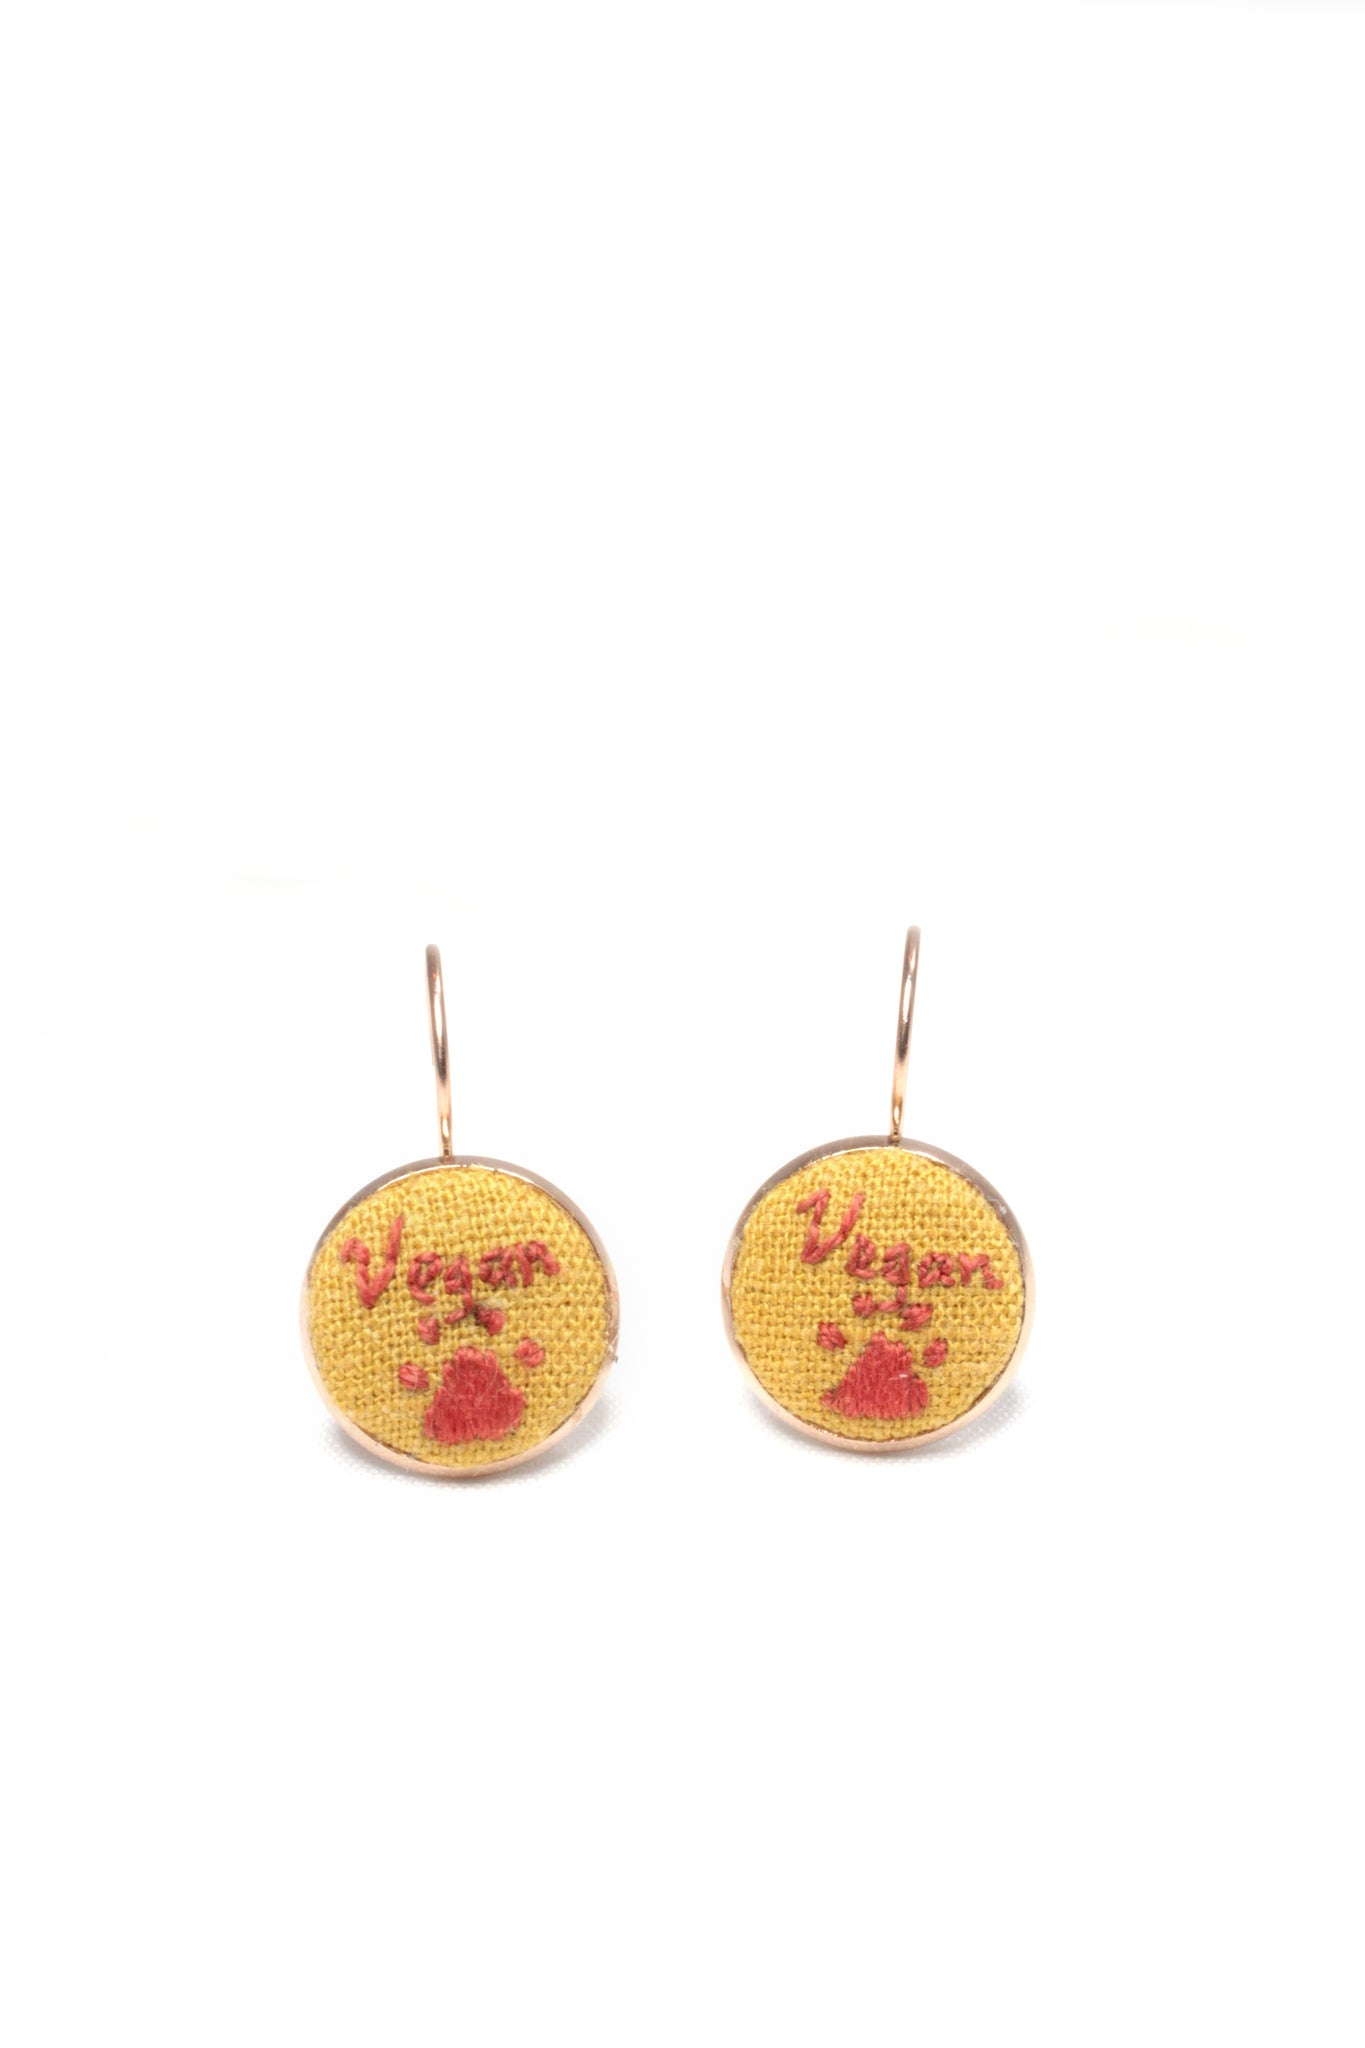 Embroidery Earrings - Vegan + Paws